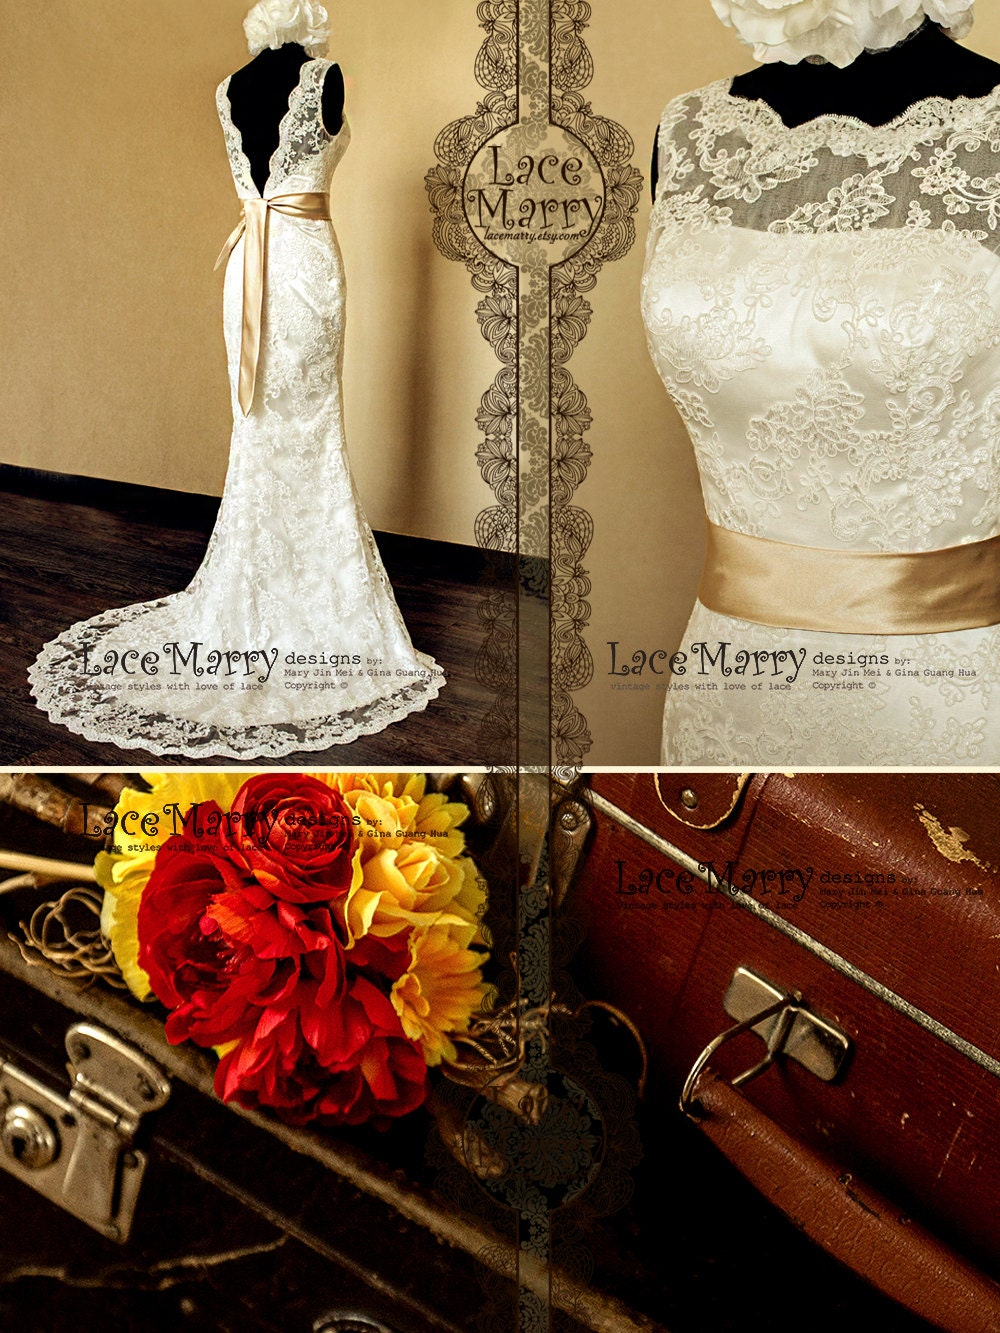 Deep V-Cut Back Vintage Style Lace Wedding Dress Features